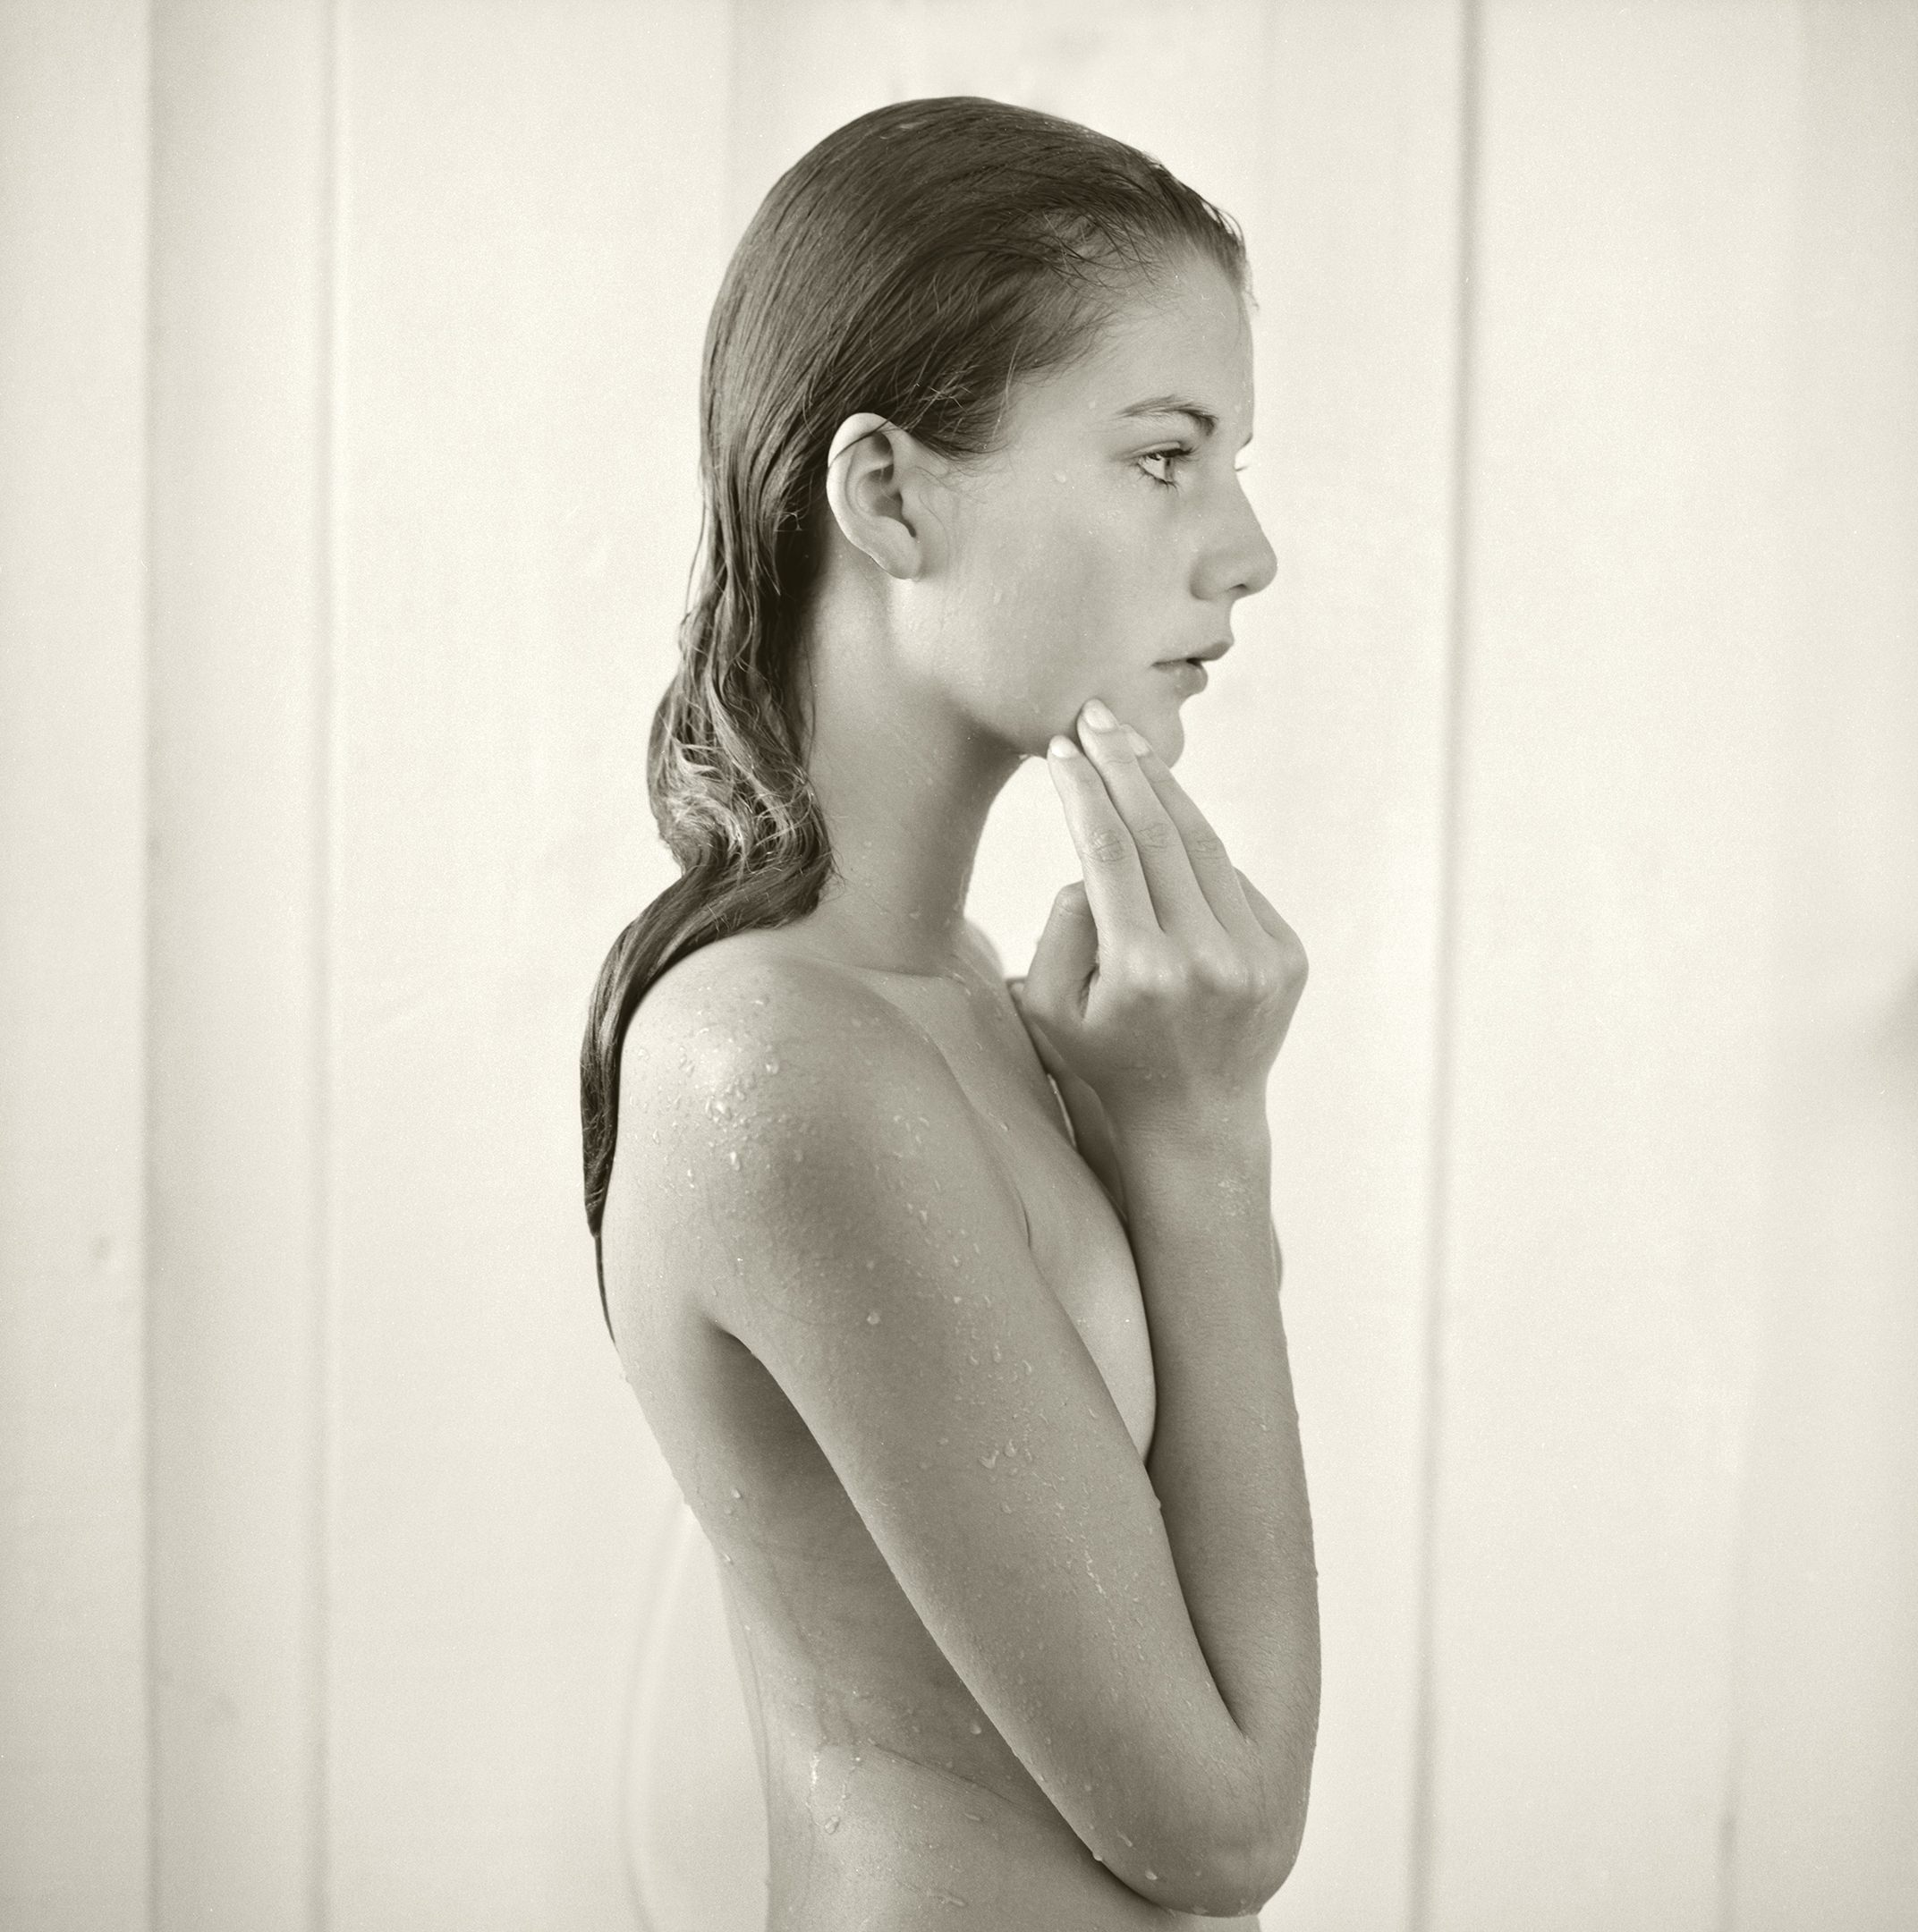 Nude youth photographs